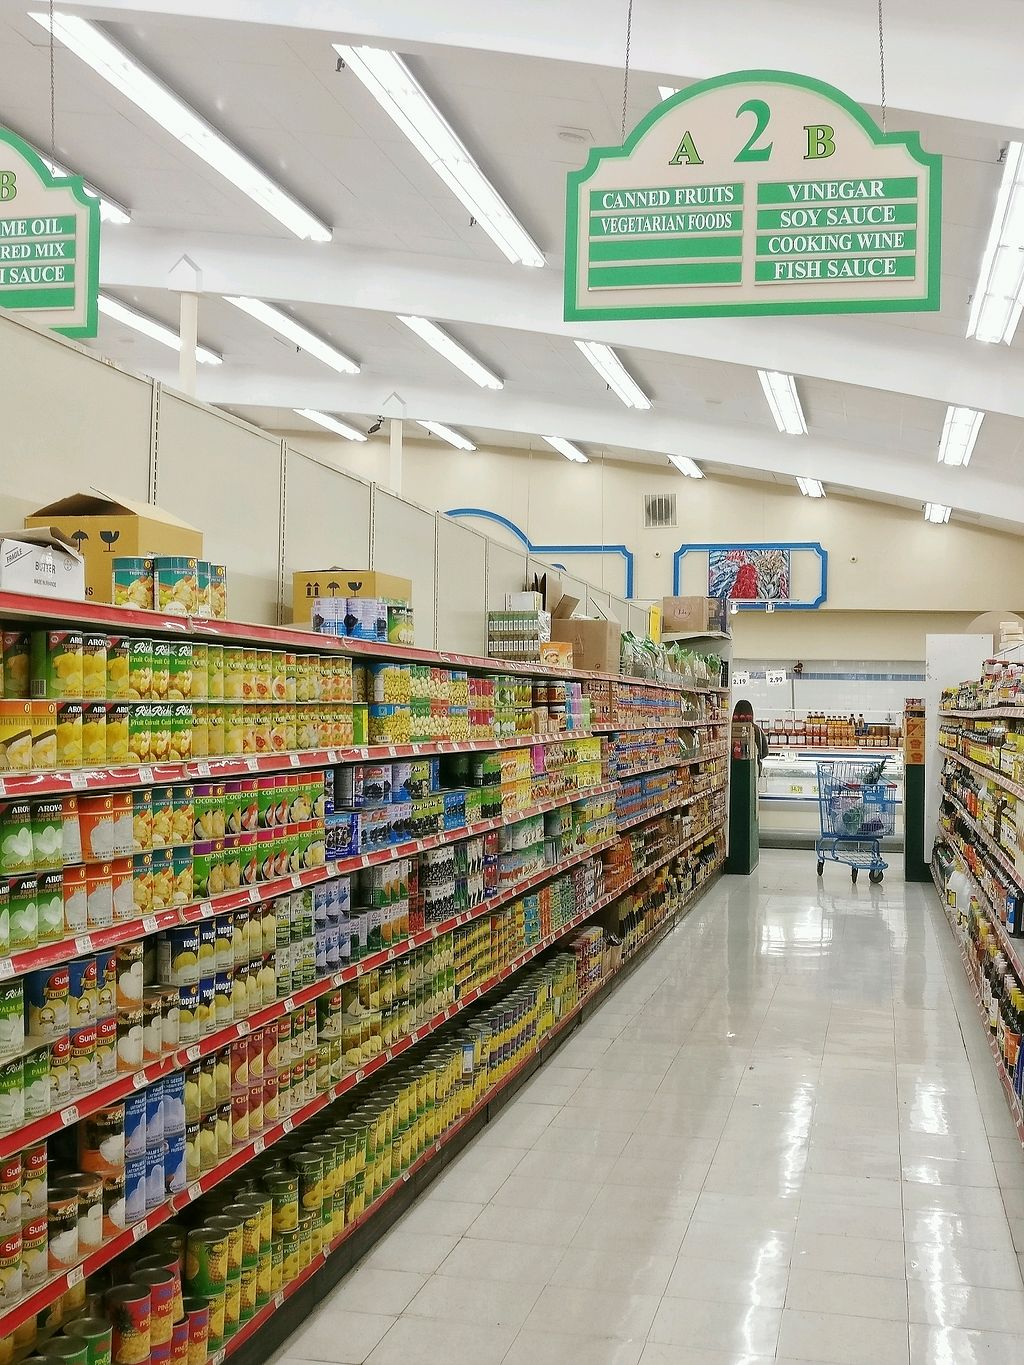 """Photo of World Foods Supermarket  by <a href=""""/members/profile/KellyBone"""">KellyBone</a> <br/>Vegetarian Food Aisle  <br/> March 11, 2018  - <a href='/contact/abuse/image/106061/369470'>Report</a>"""